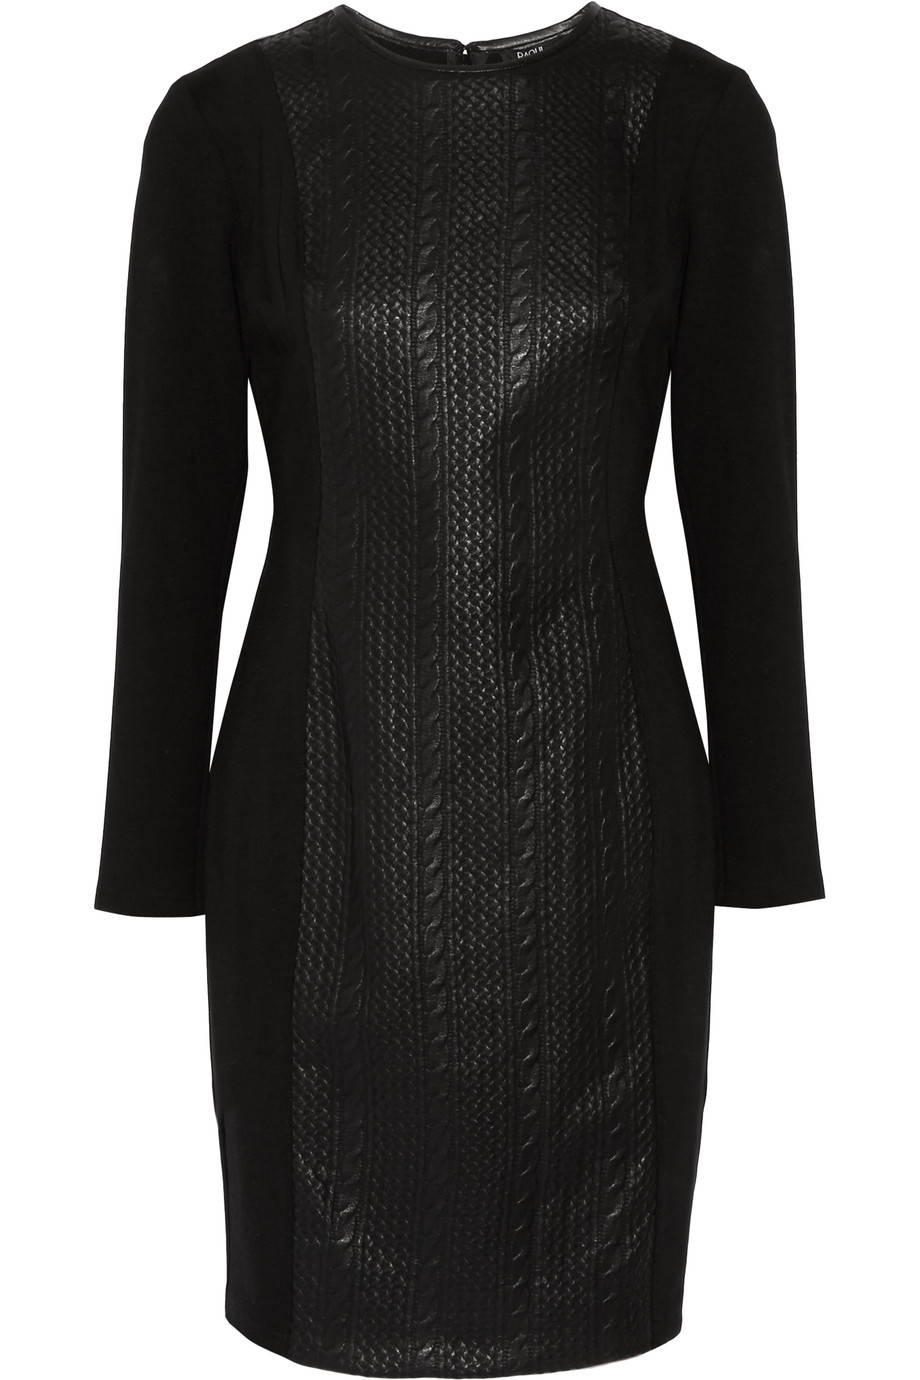 Paneled Faux Textured Leather And Cotton Blend Dress Black - length: mid thigh; fit: tight; pattern: plain; style: bodycon; predominant colour: black; occasions: evening; fibres: cotton - mix; neckline: crew; sleeve length: long sleeve; sleeve style: standard; texture group: leather; pattern type: fabric; season: s/s 2016; wardrobe: event